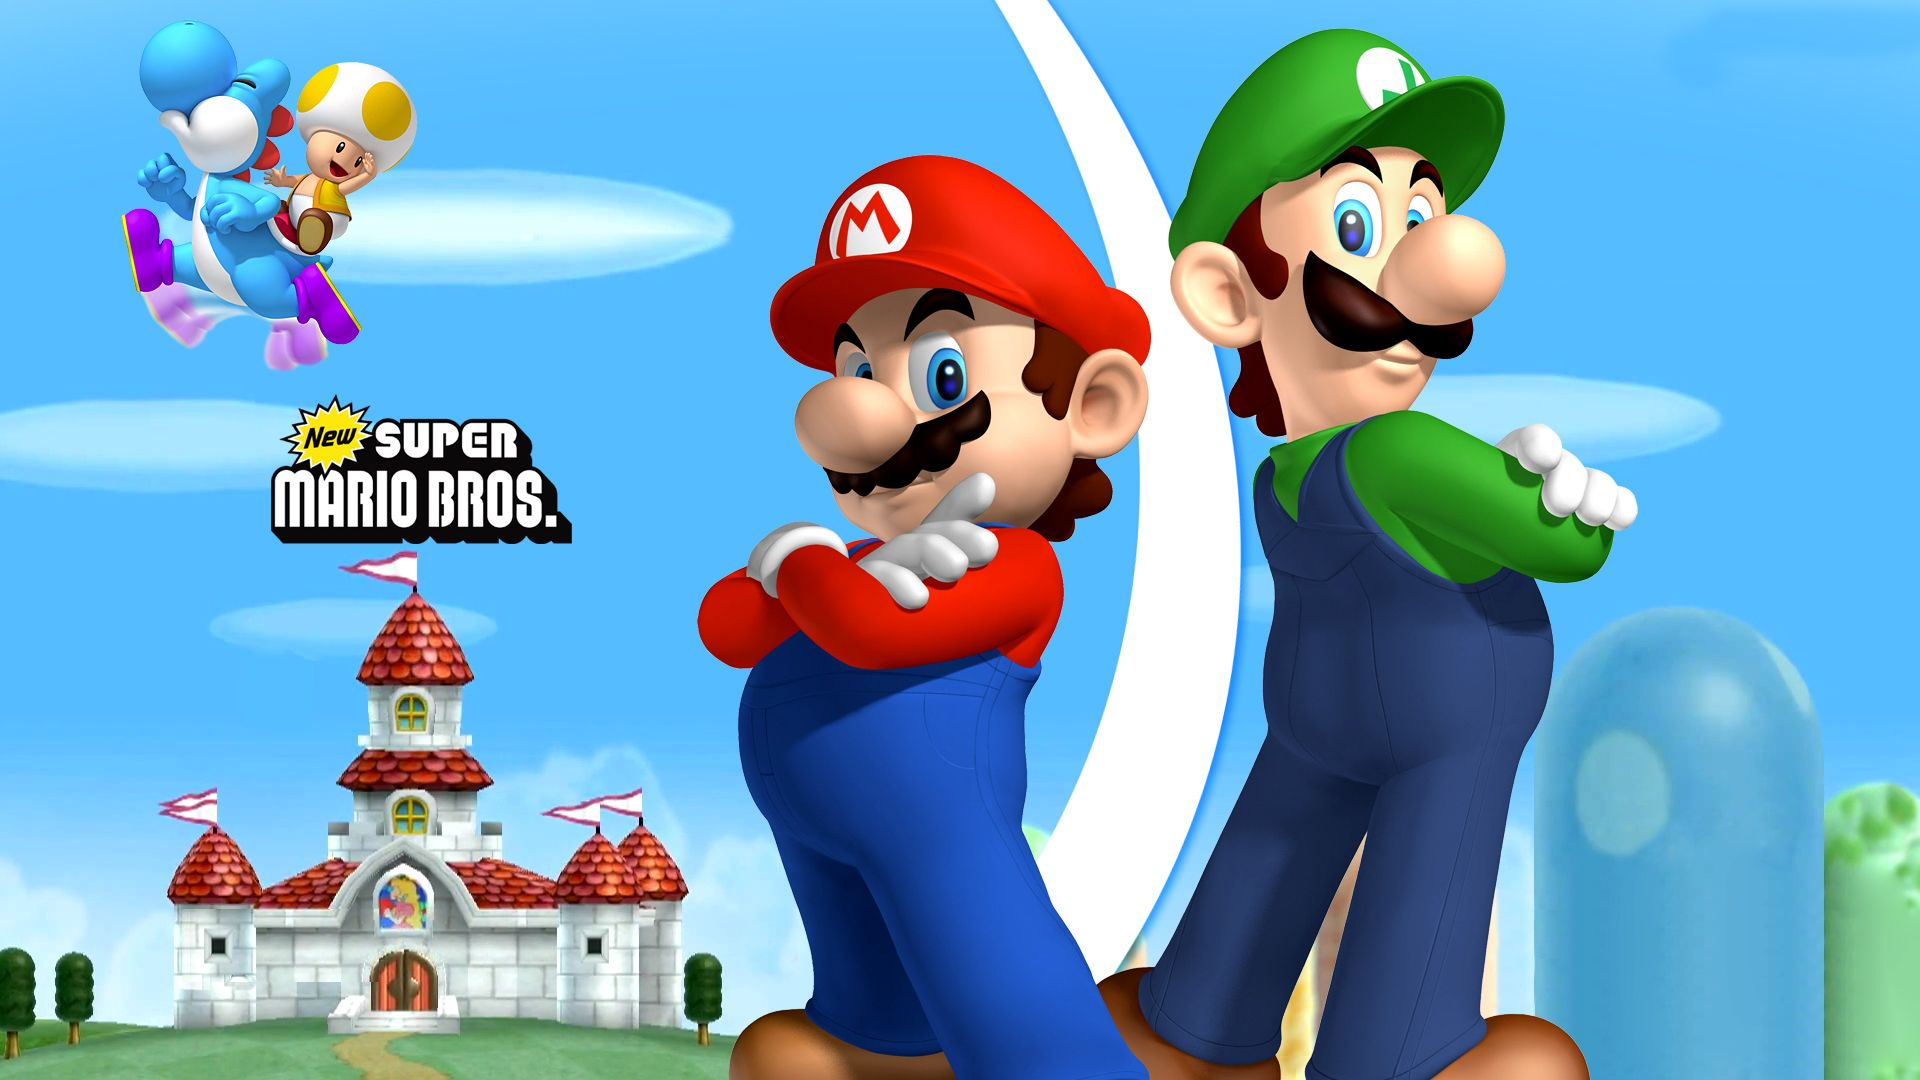 Super Mario Bros HD desktop wallpaper : Fullscreen : Dual